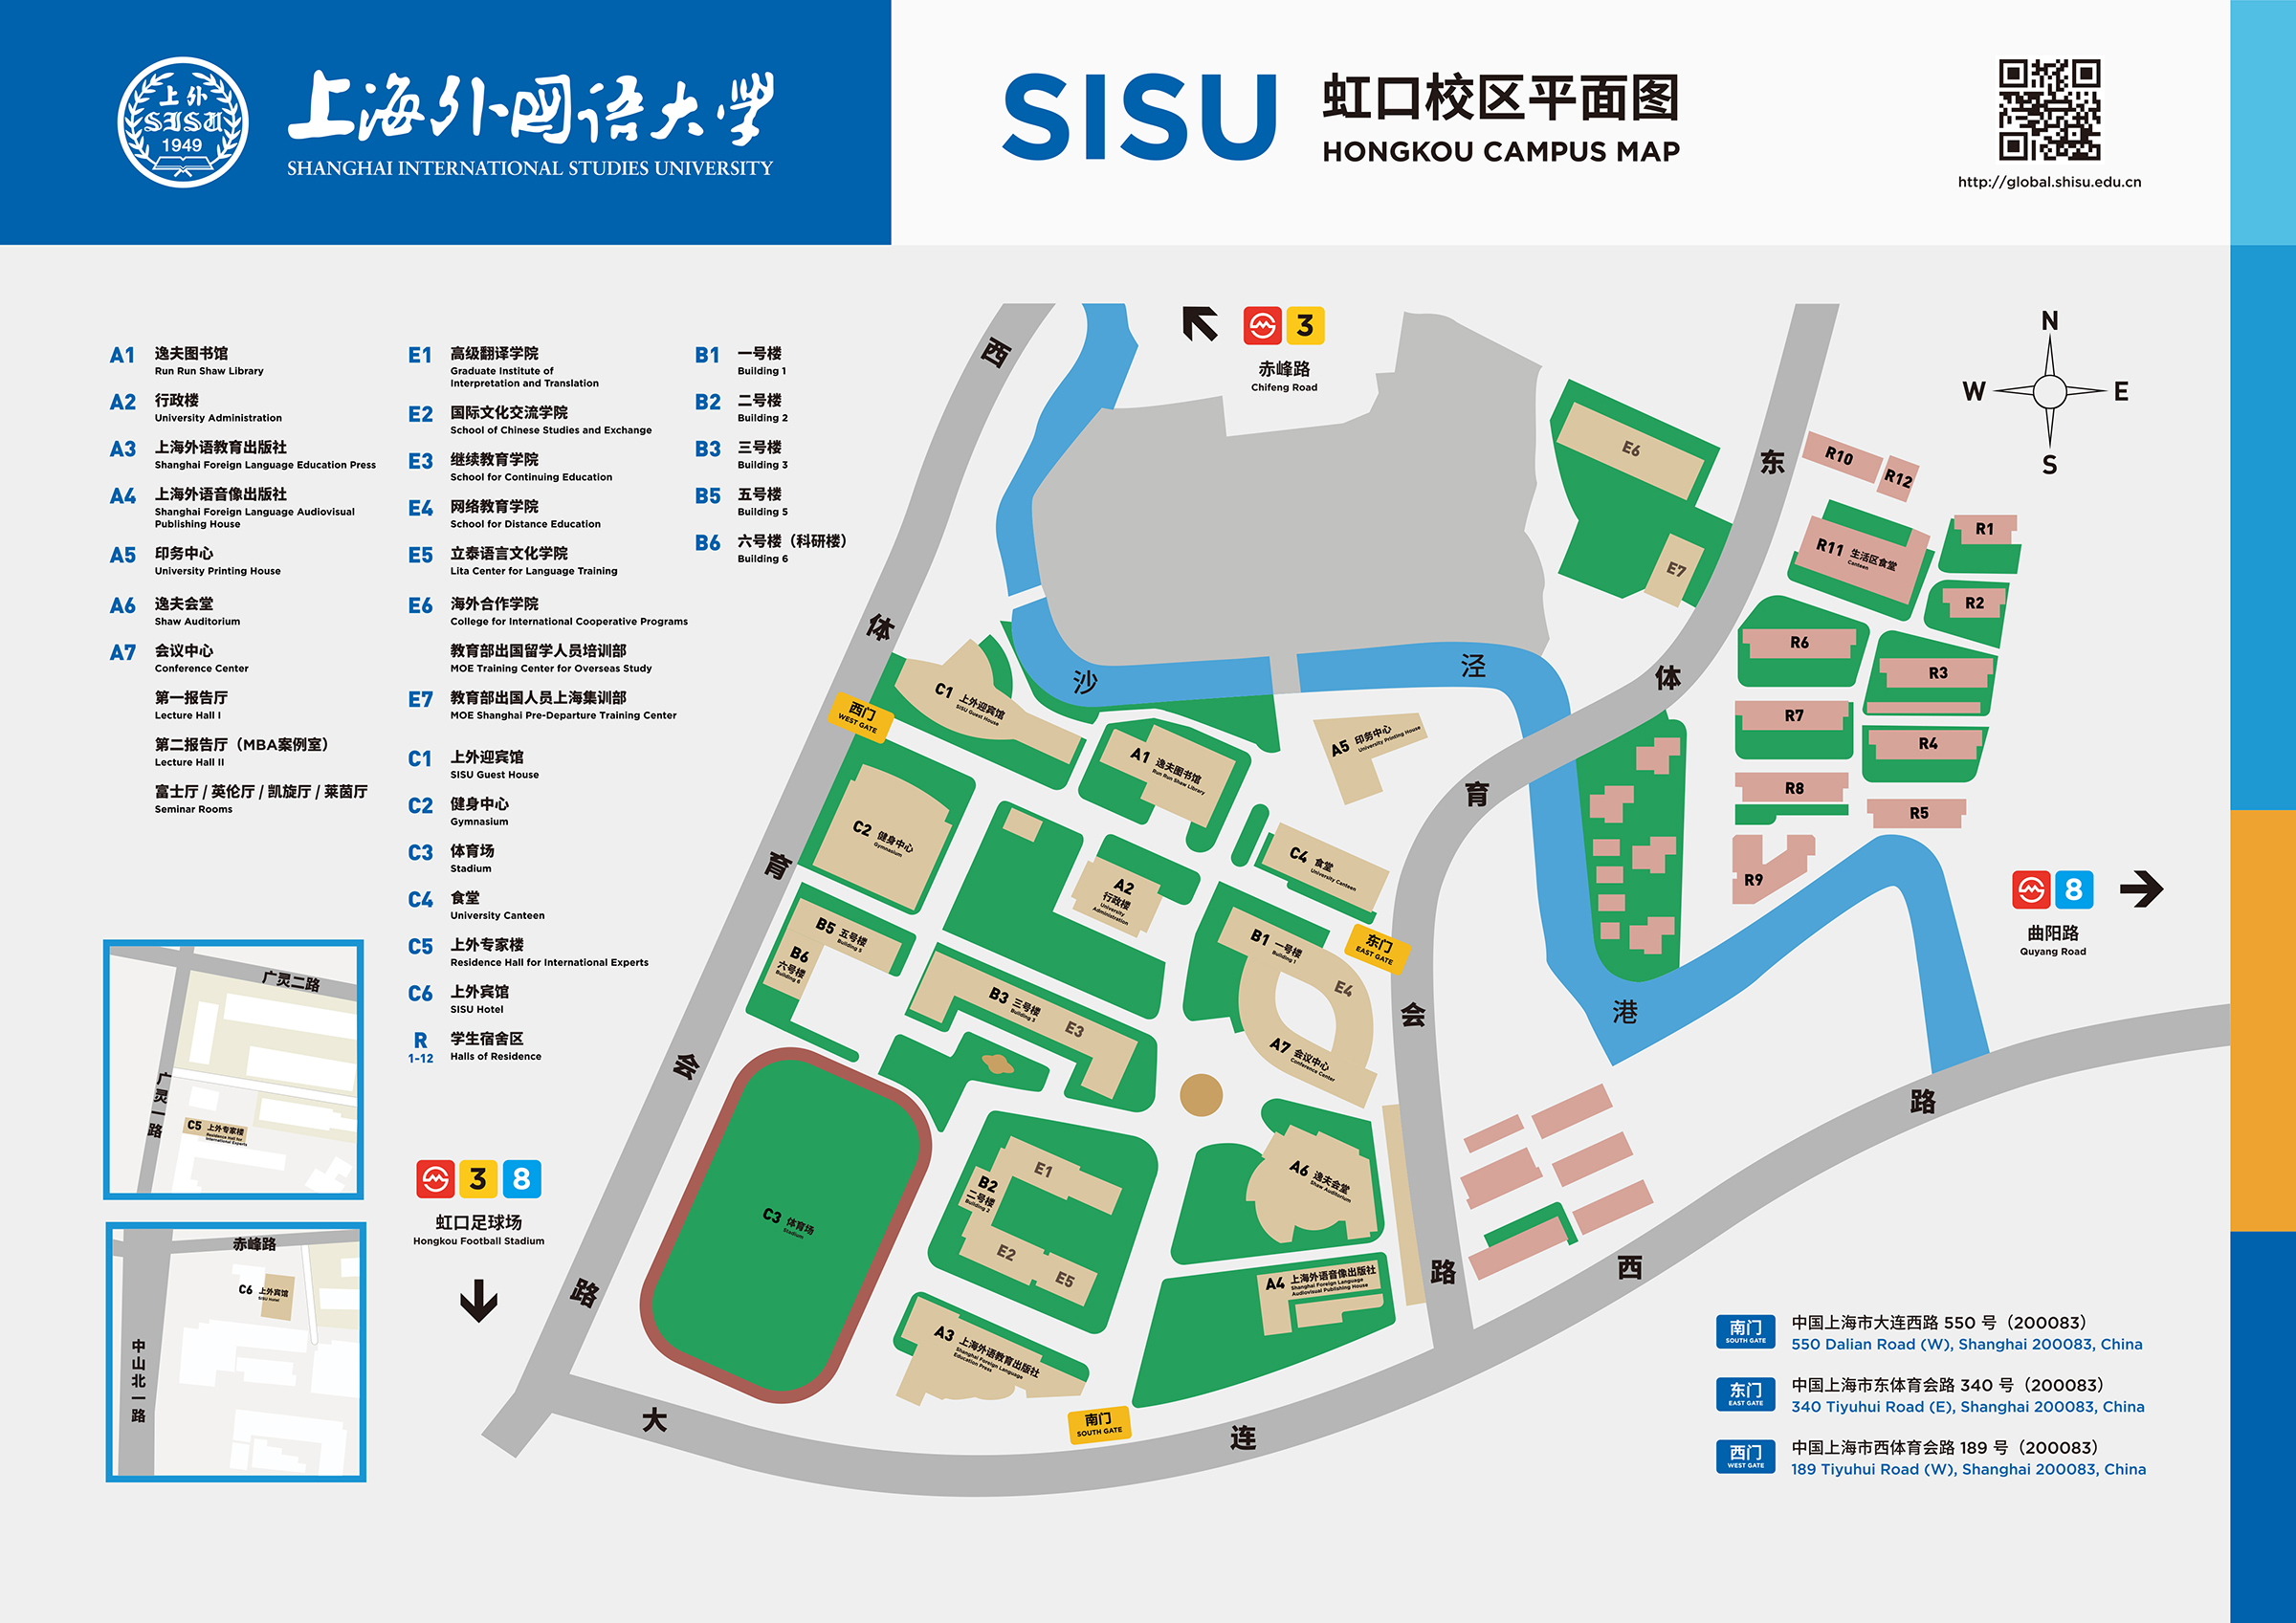 SISU-Hongkou-Campus-Map-small.jpg